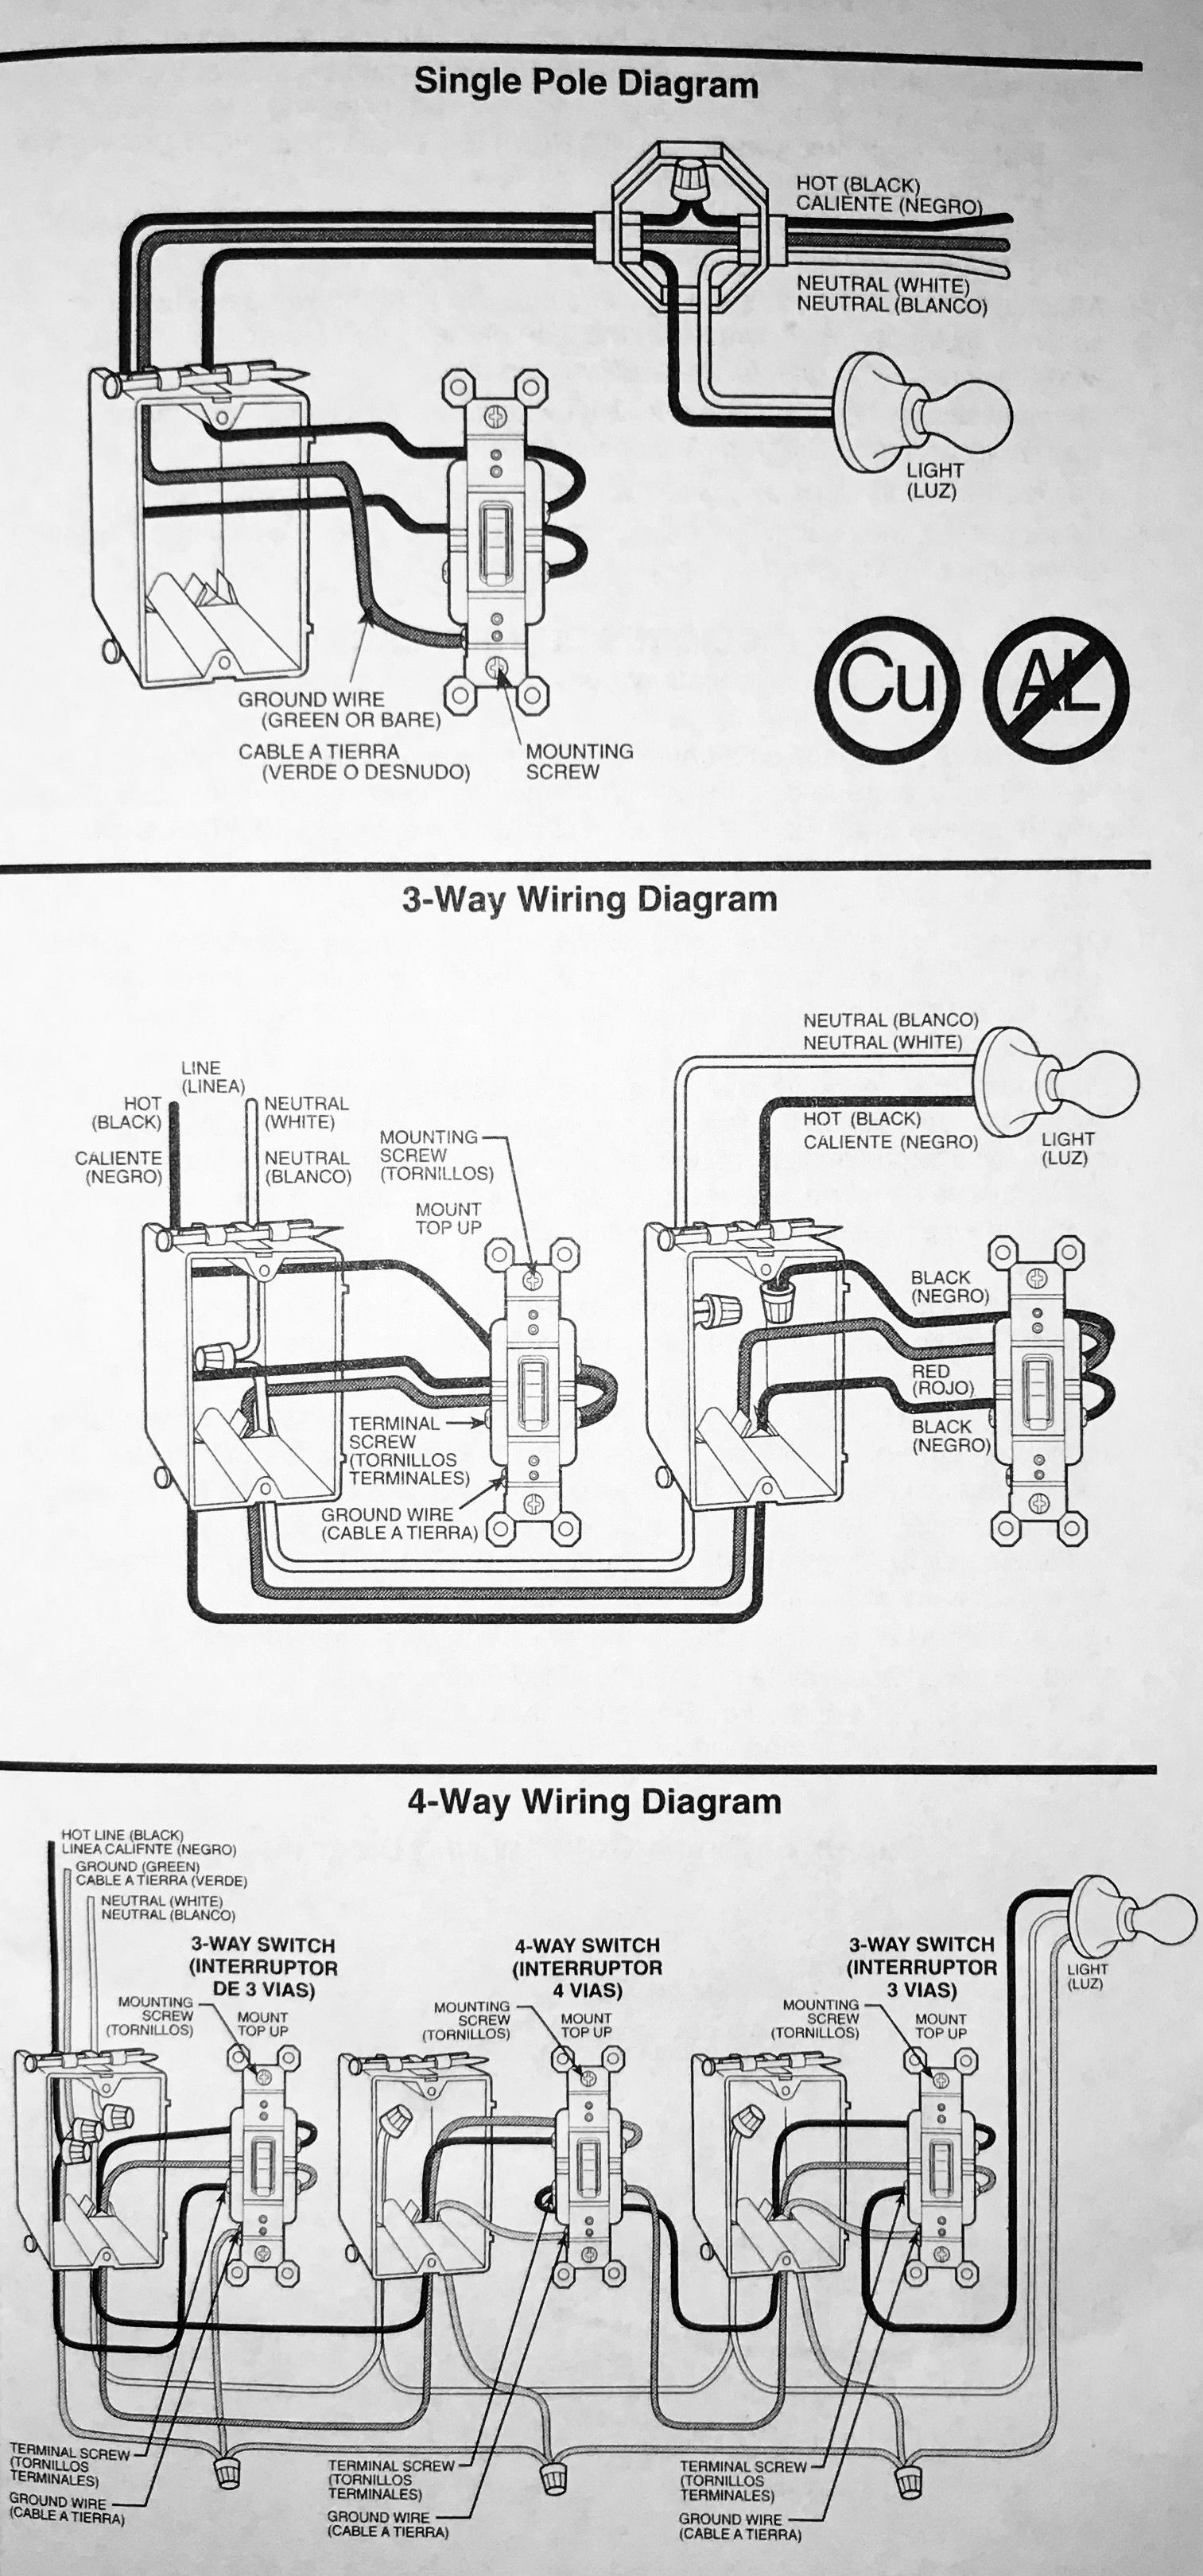 Lutron Single Pole Dimmer Switch Wiring Diagram For Your Needs